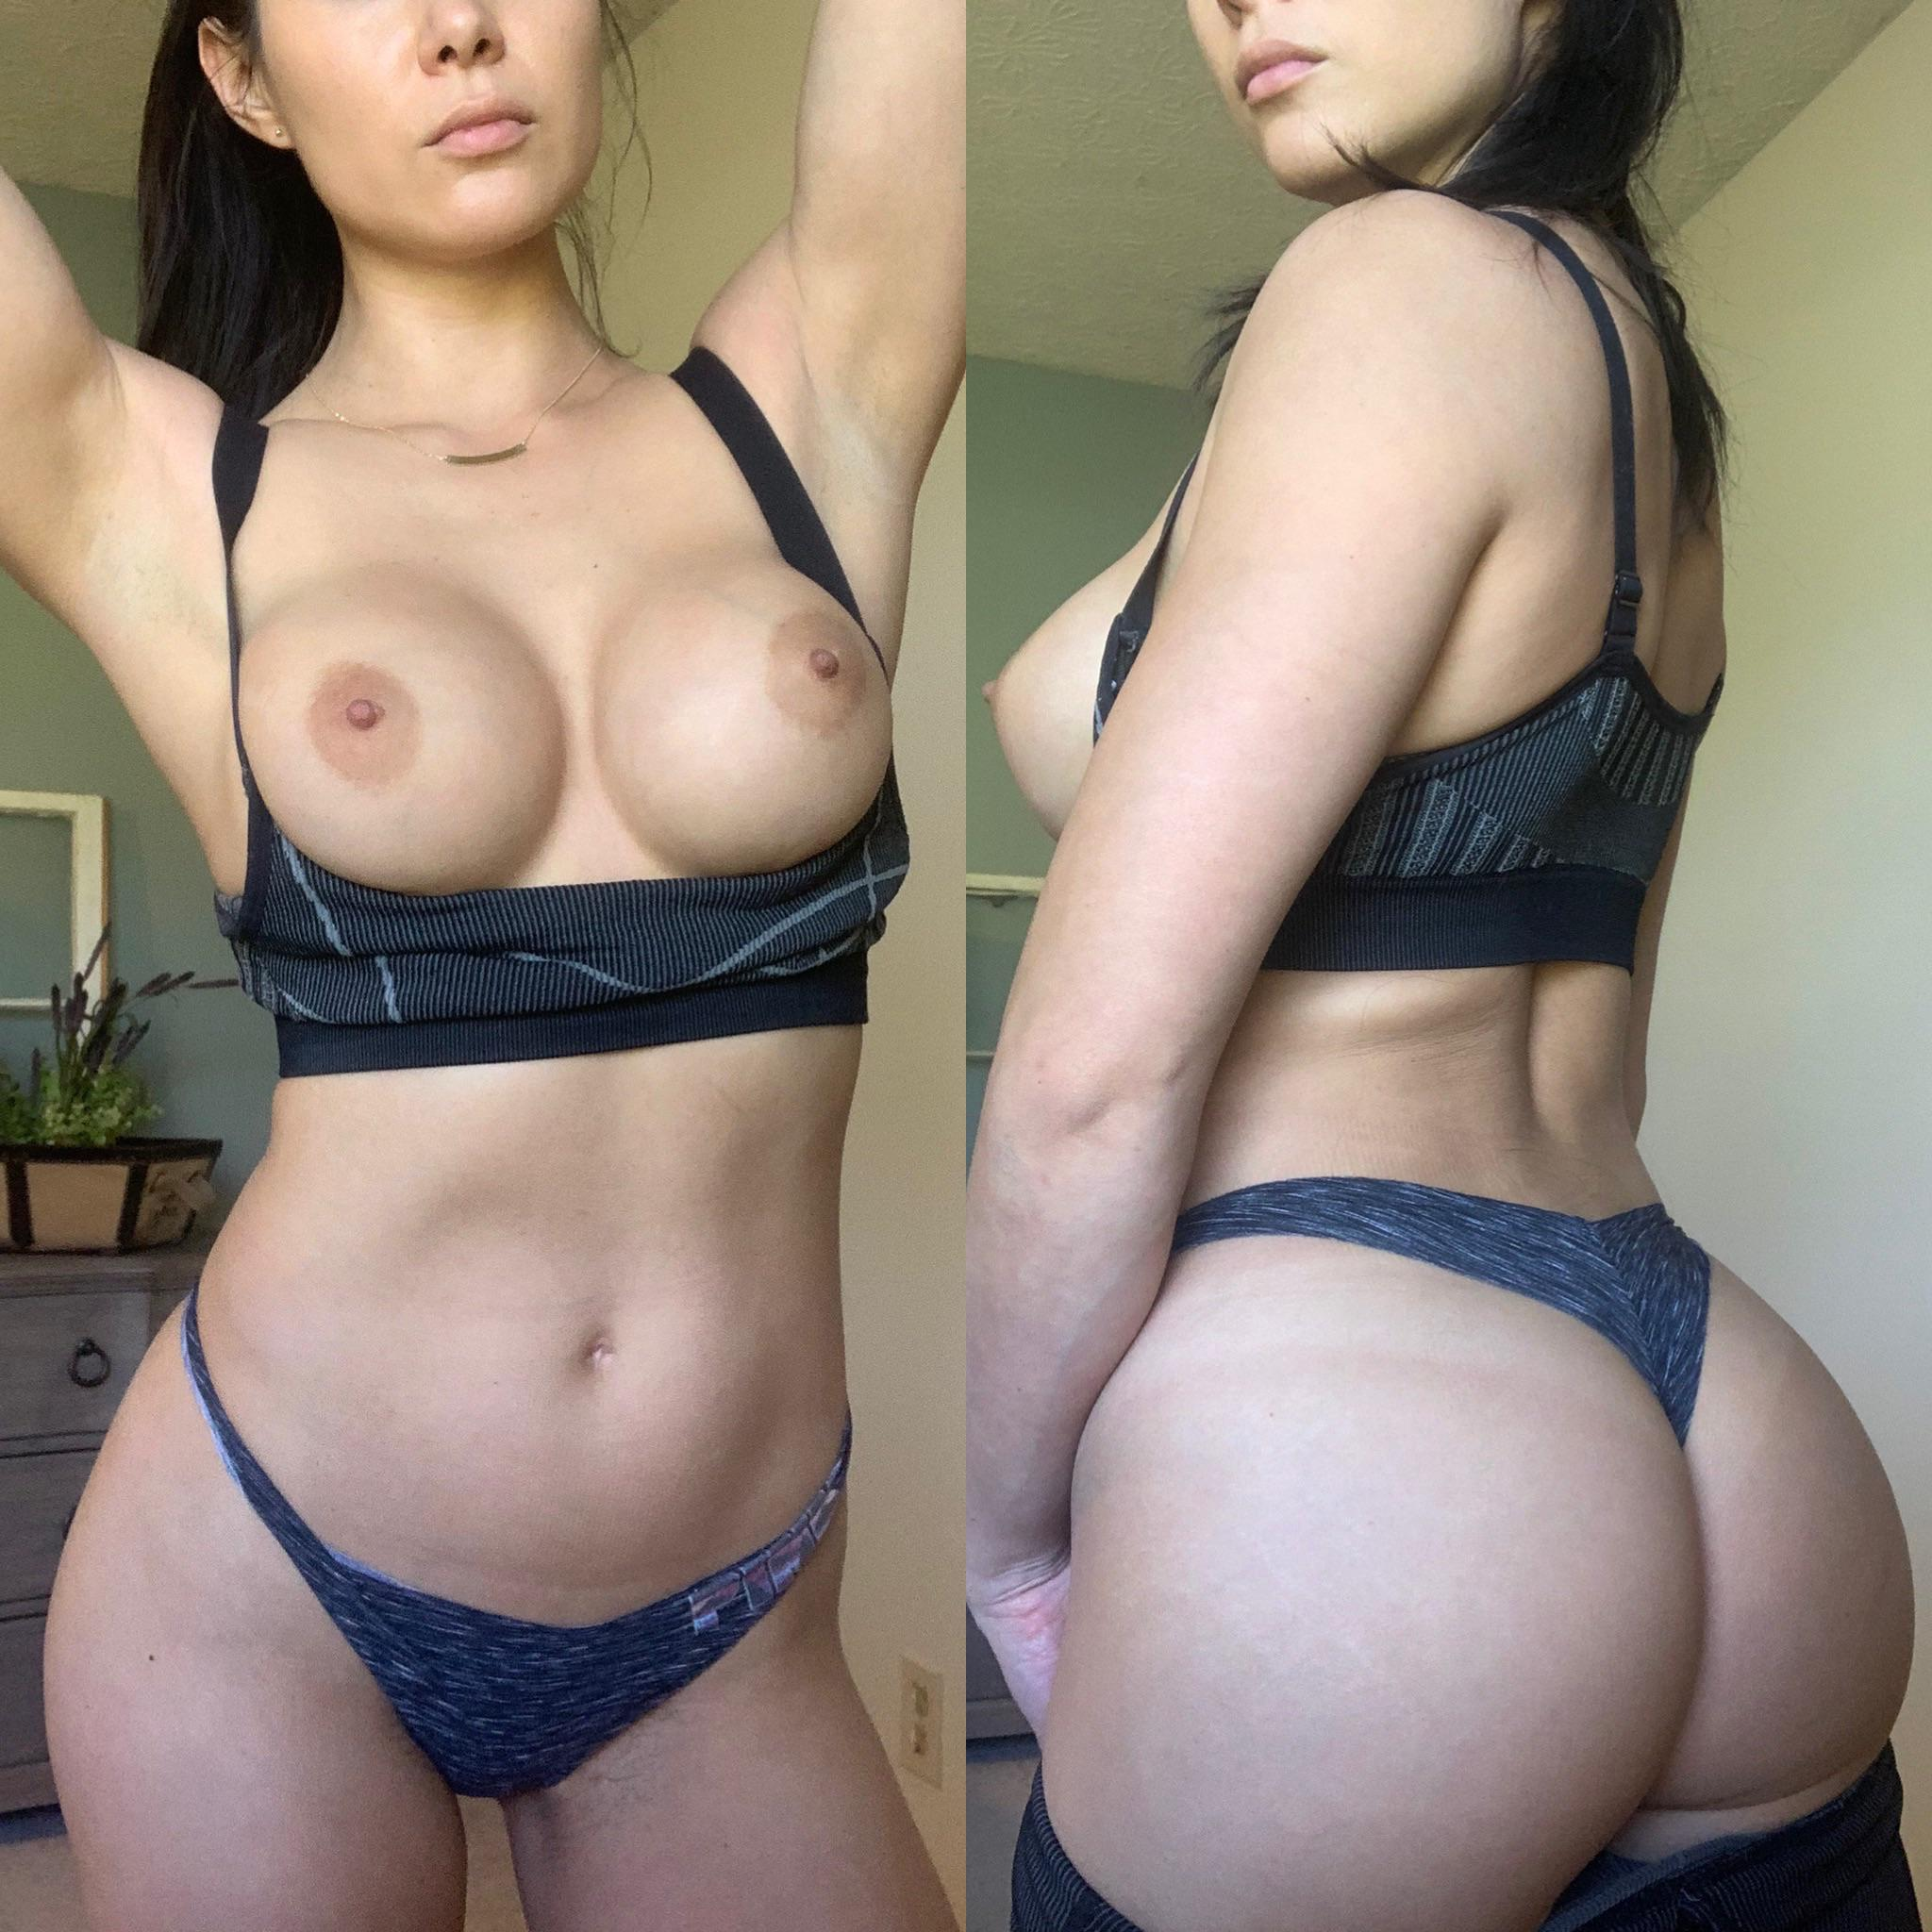 30 mil[f] which side of me do you like more?